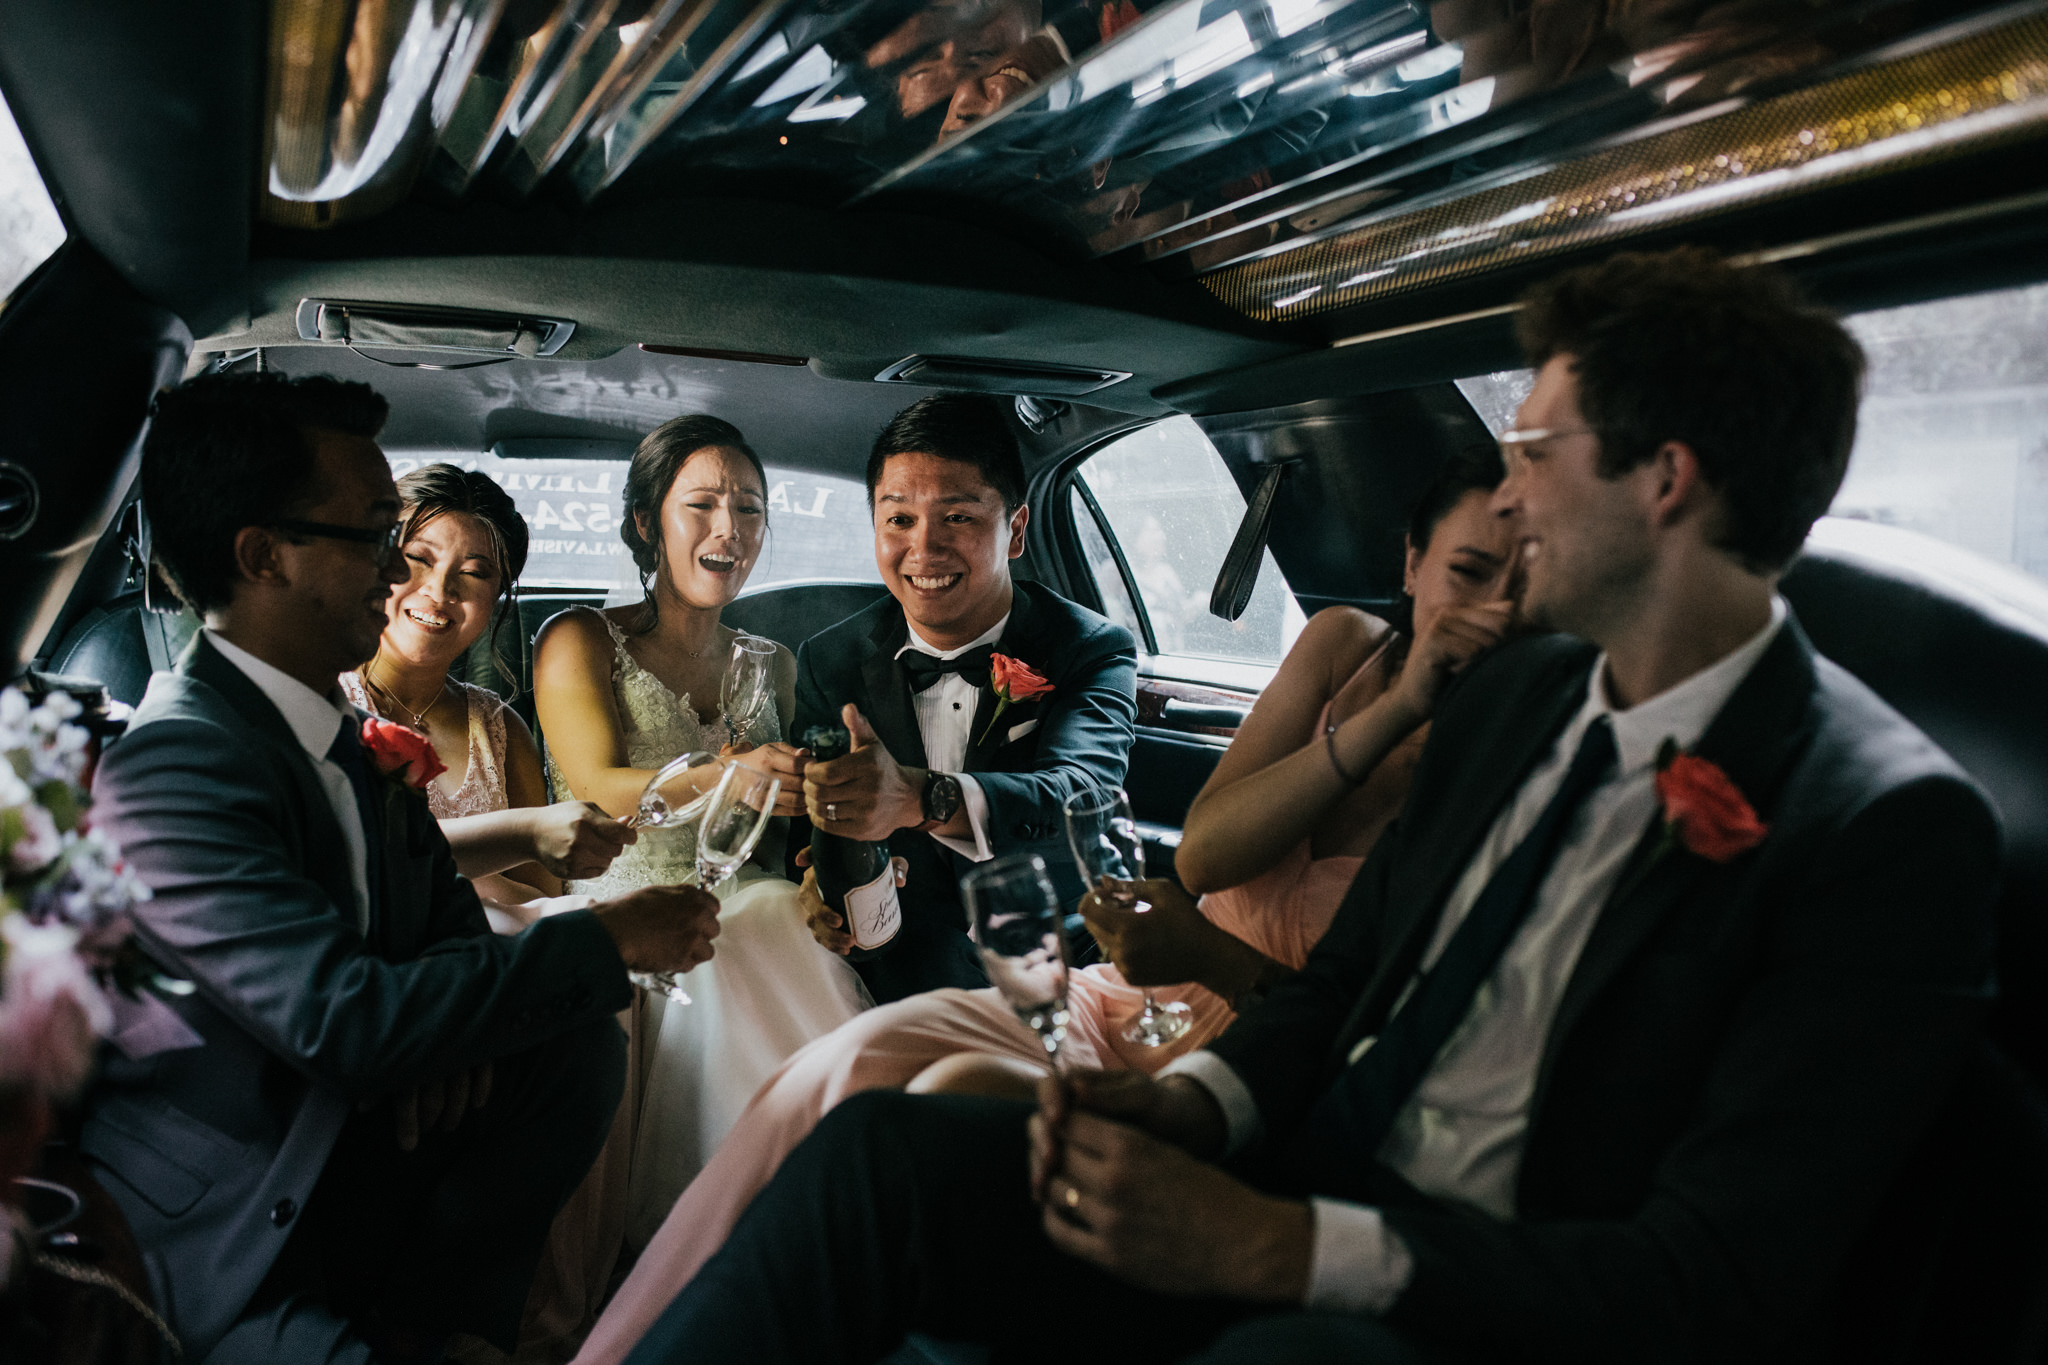 bridal party popping champagne in a limo